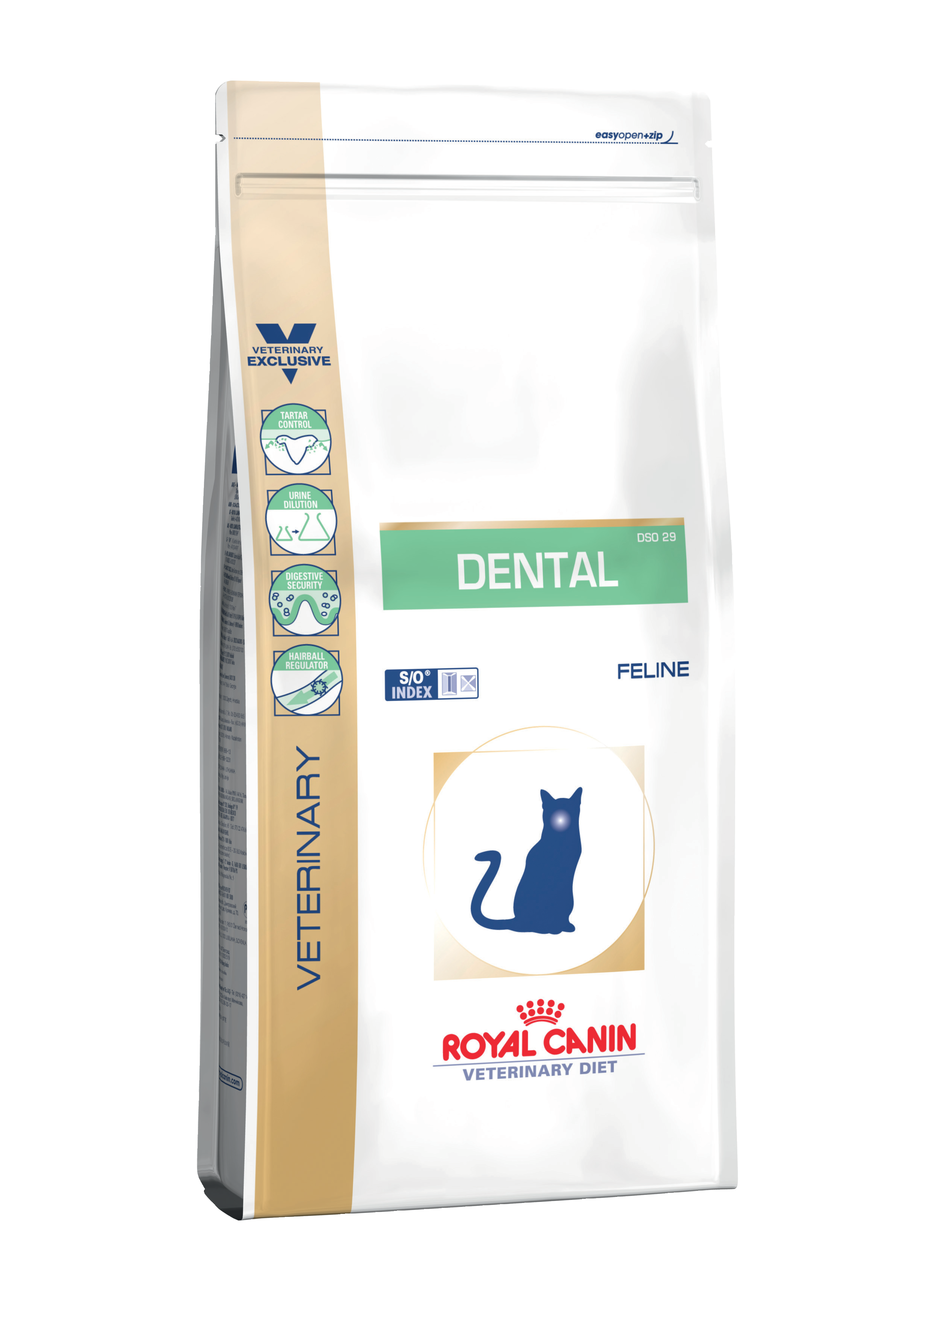 Royal Canin Dental for Cats